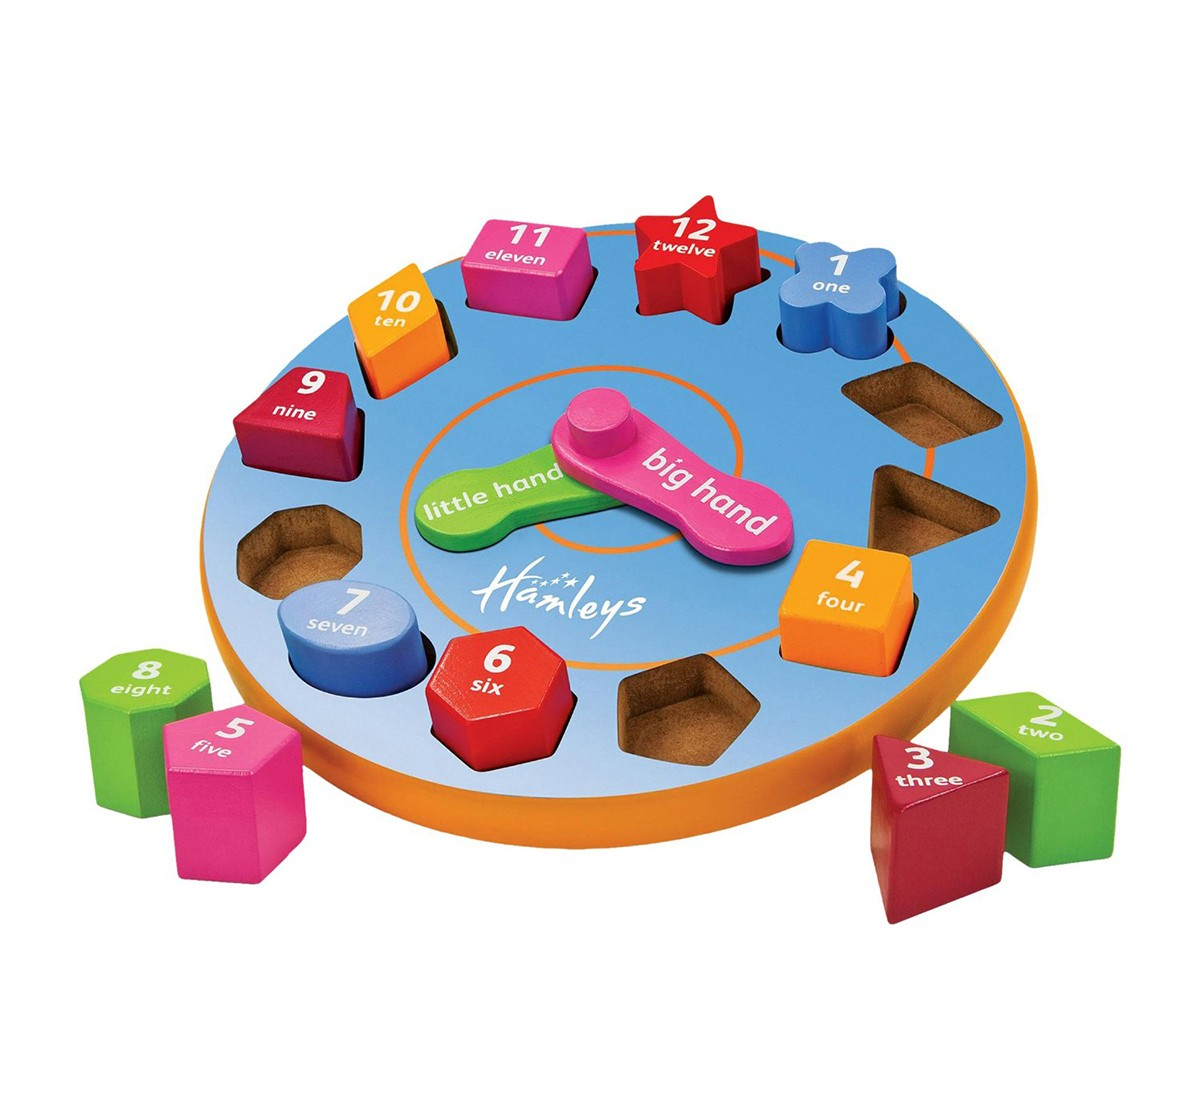 Hamleys Wooden Teaching Time Clock Wooden Toys for Kids age 18M +